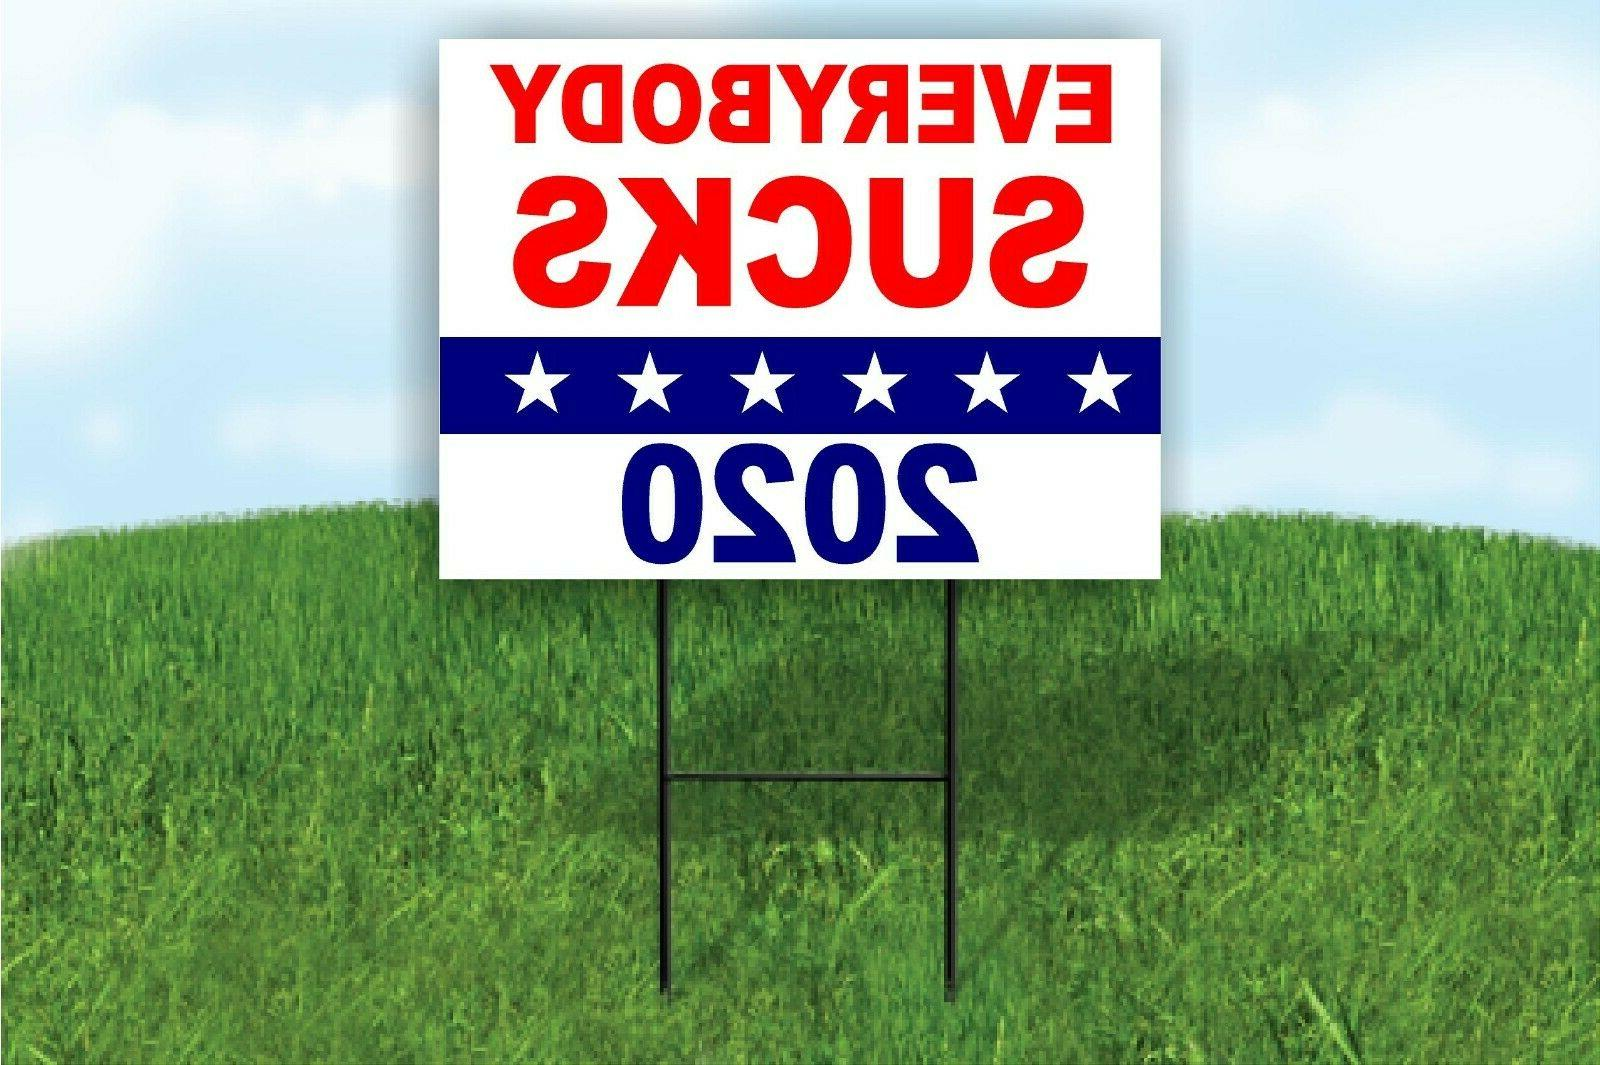 everybody sucks 2020 political president yard sign